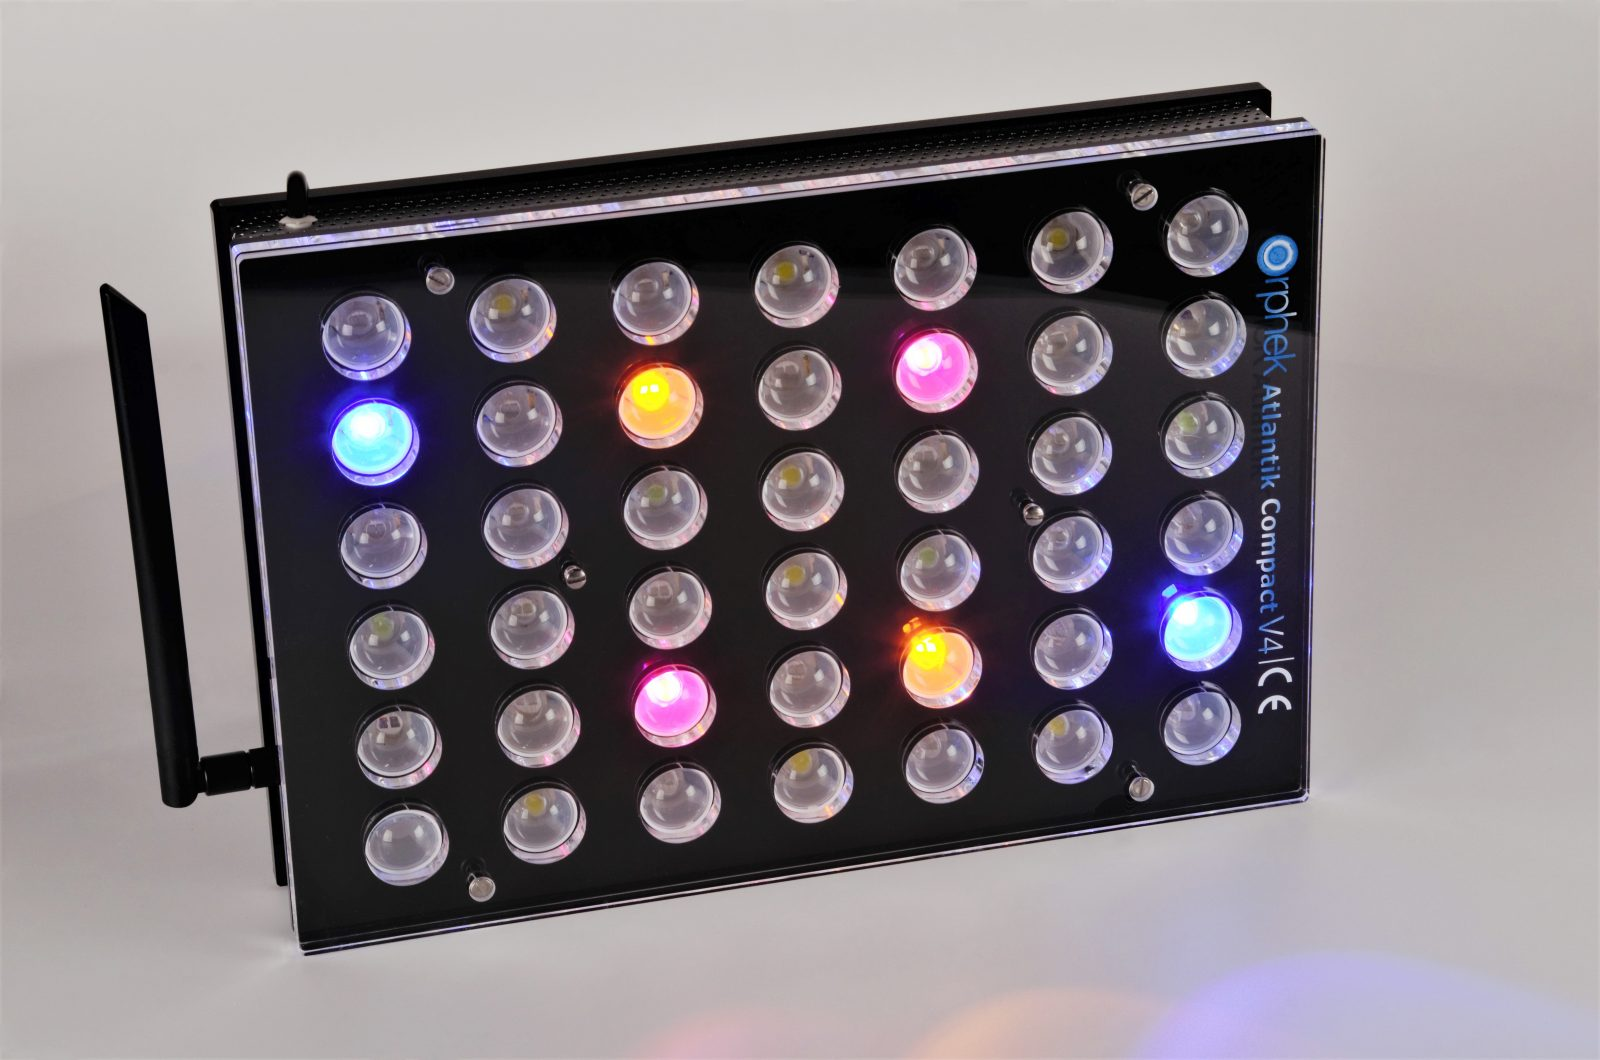 Orphek-Aquarium-LED-Lighting-Atlantik -Compact-V4-licht -on-kanaal 4